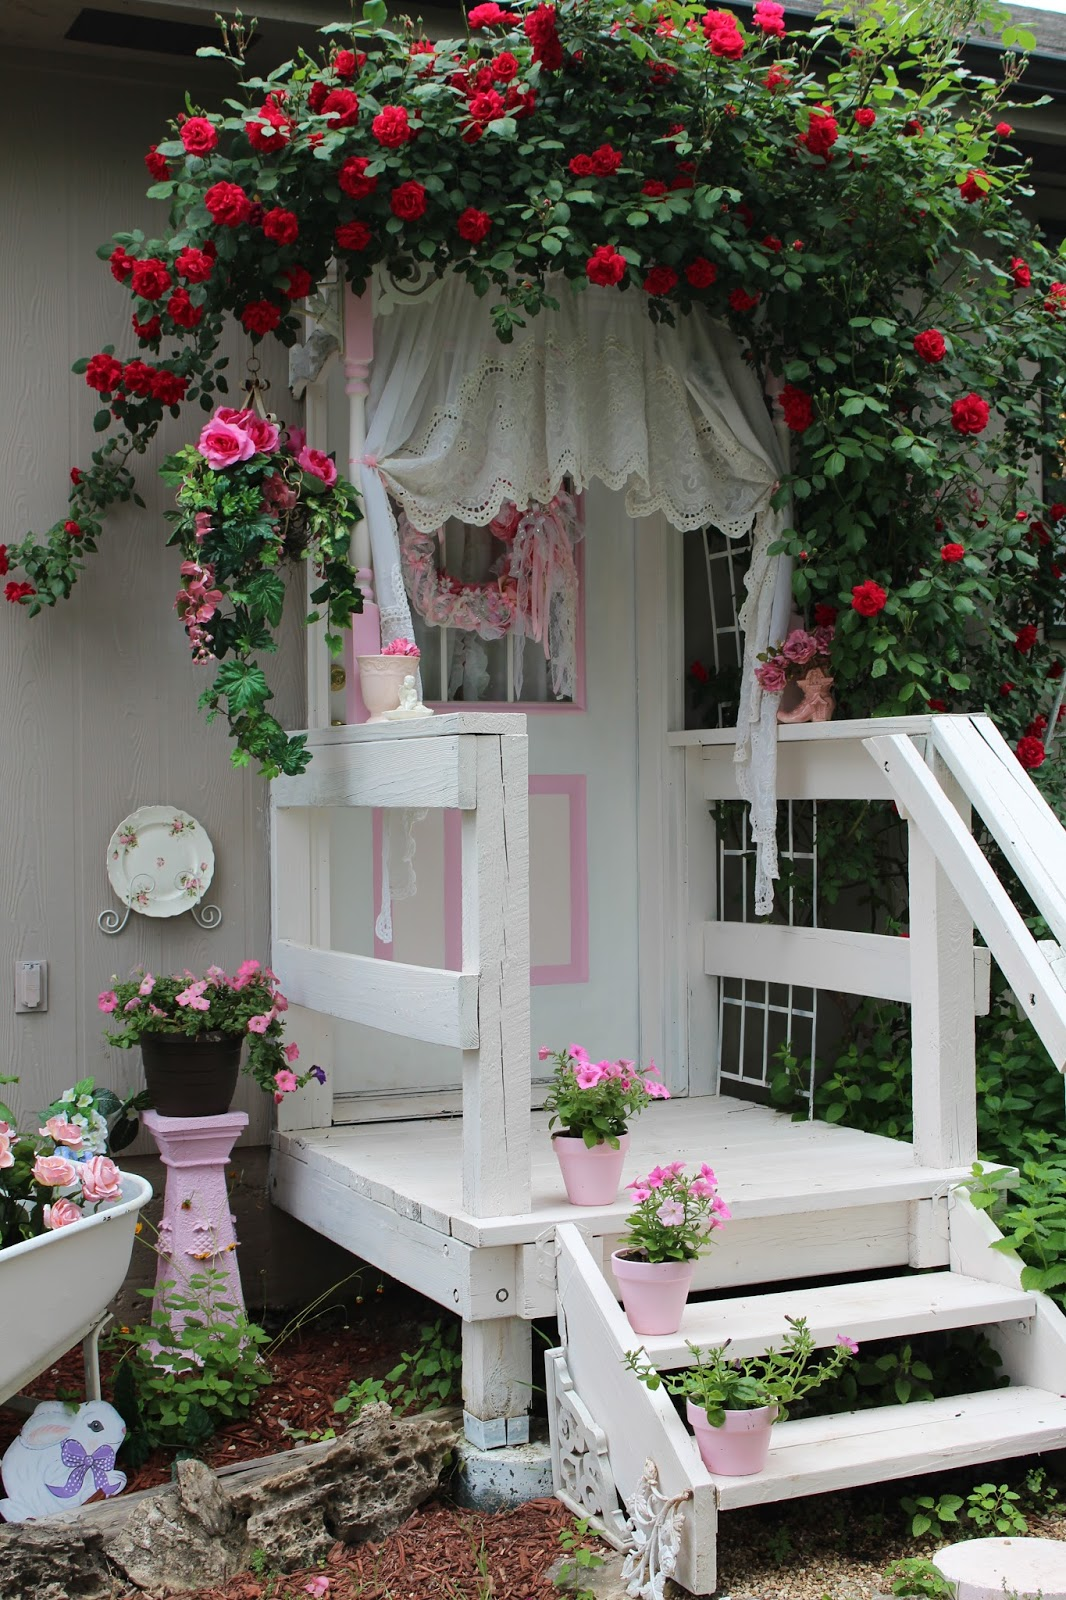 olivia 39 s romantic home shabby chic garden. Black Bedroom Furniture Sets. Home Design Ideas